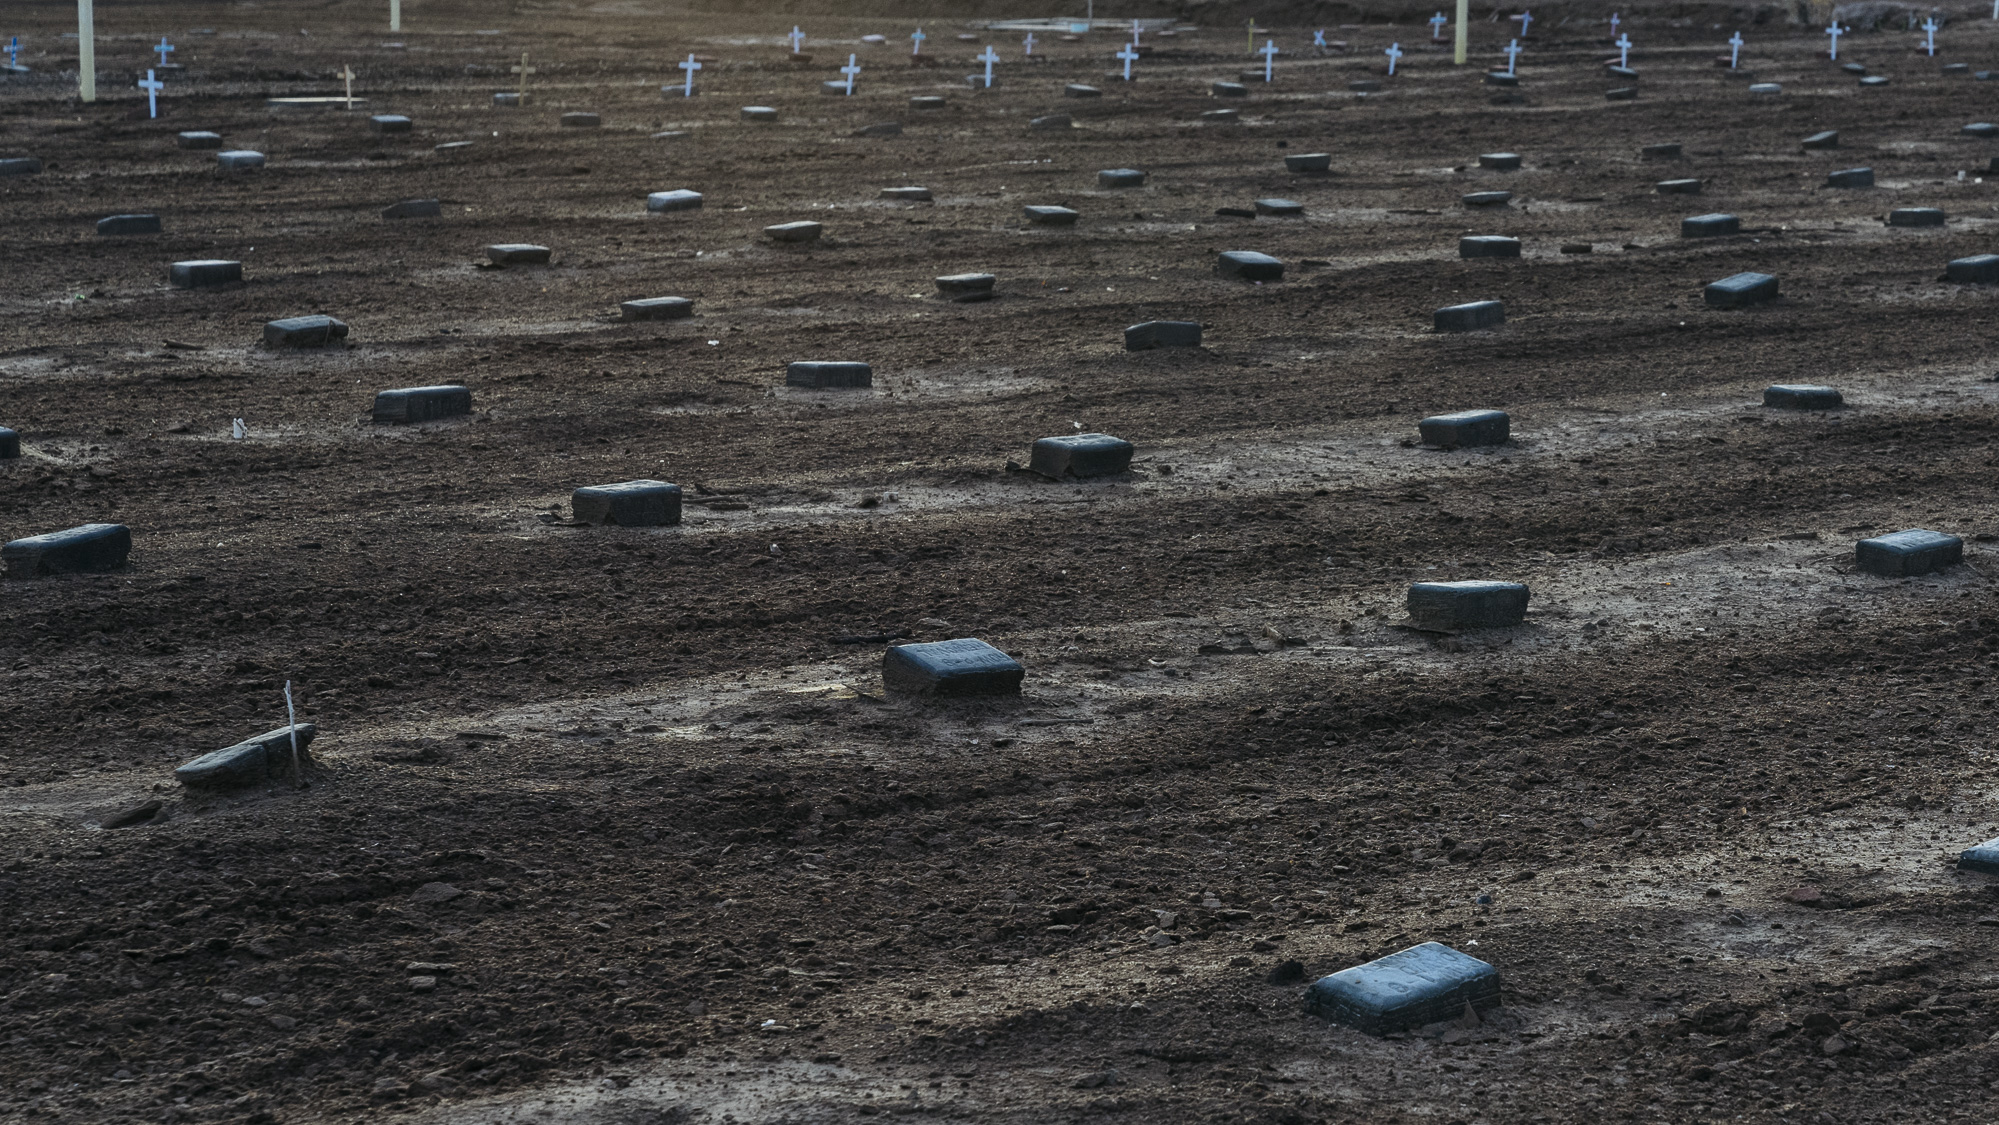 IMAGE CAPTION:  There are over 500 simply marked graves for deceased migrants in a dirt lot behind the Terrace Park Cemetery in Holtville, California. Most read Jane or John Doe.